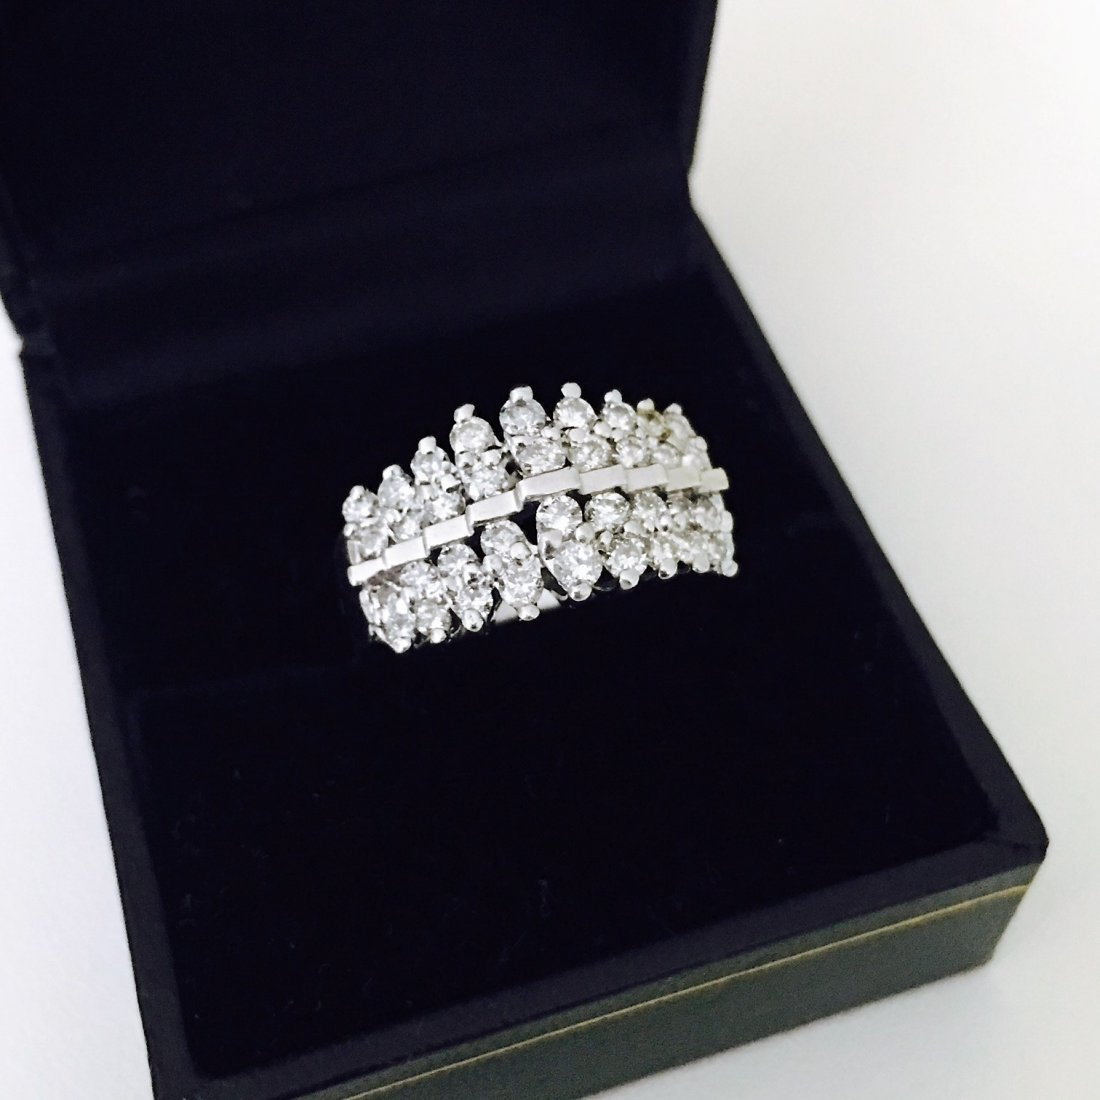 1CT DIAMOND AND 14K WHITE GOLD COCKTAIL RING.